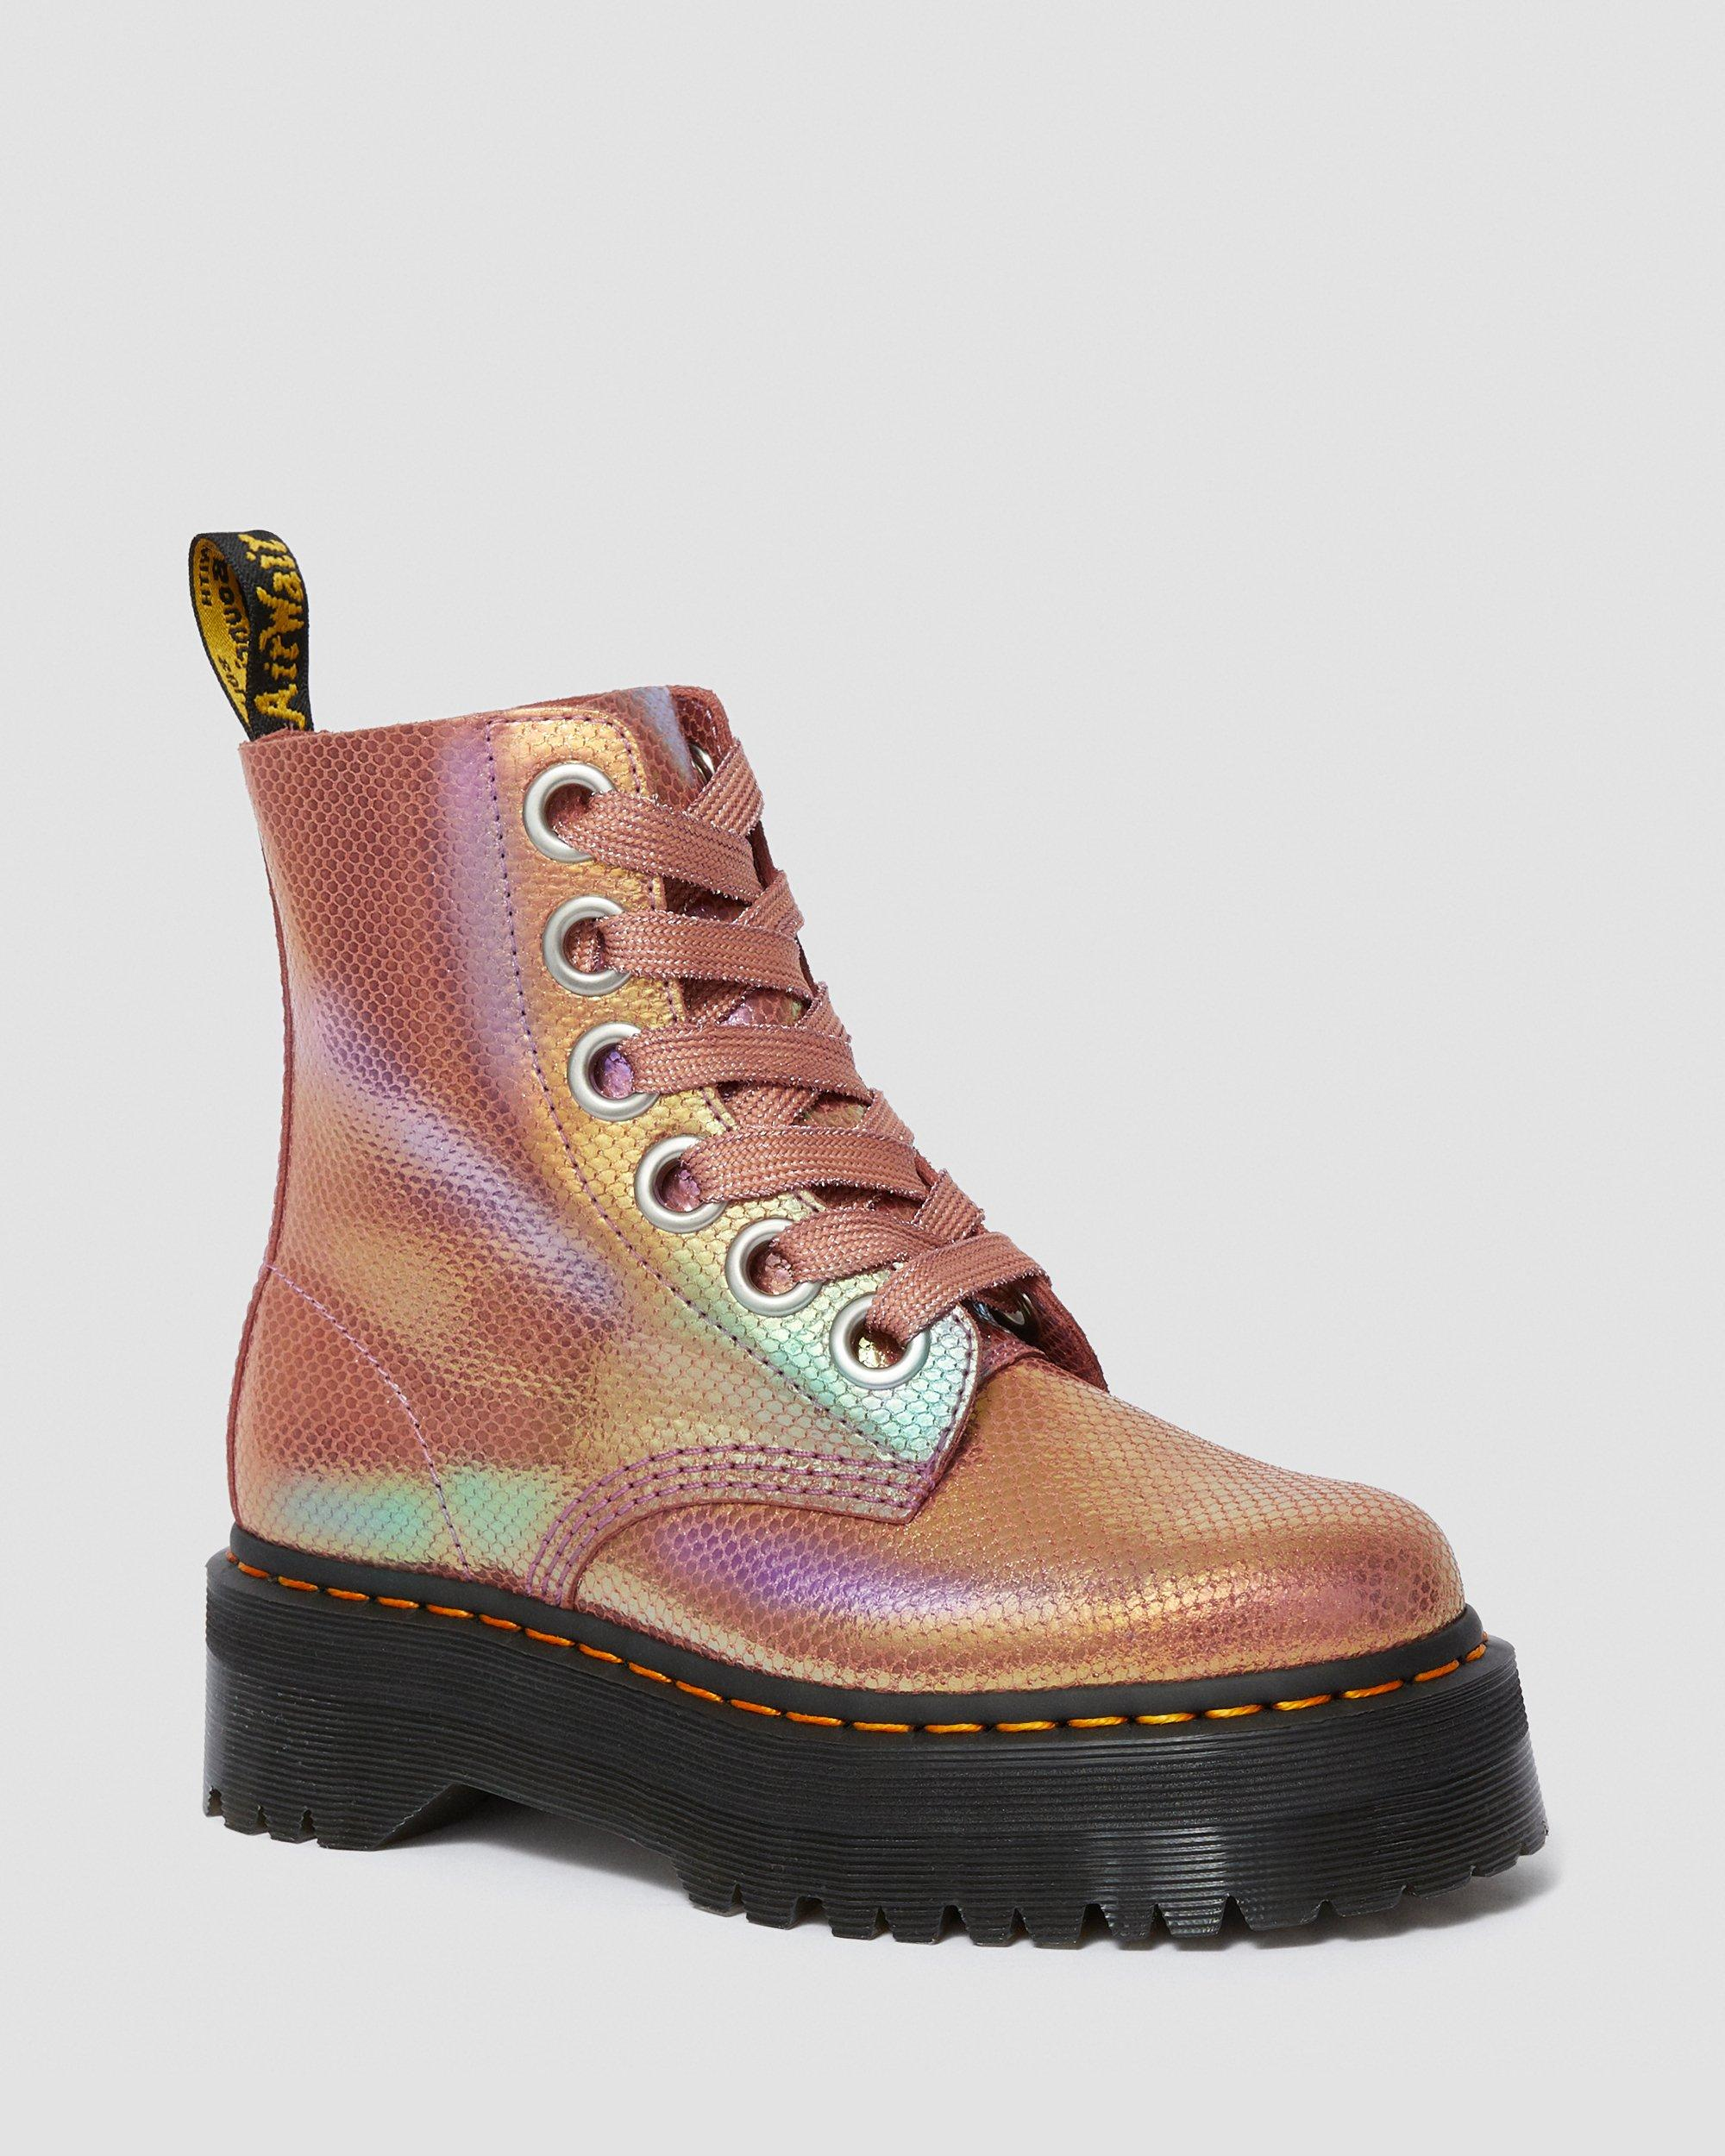 Molly Iridescent Platform Boots | Women's Footwear | Leather